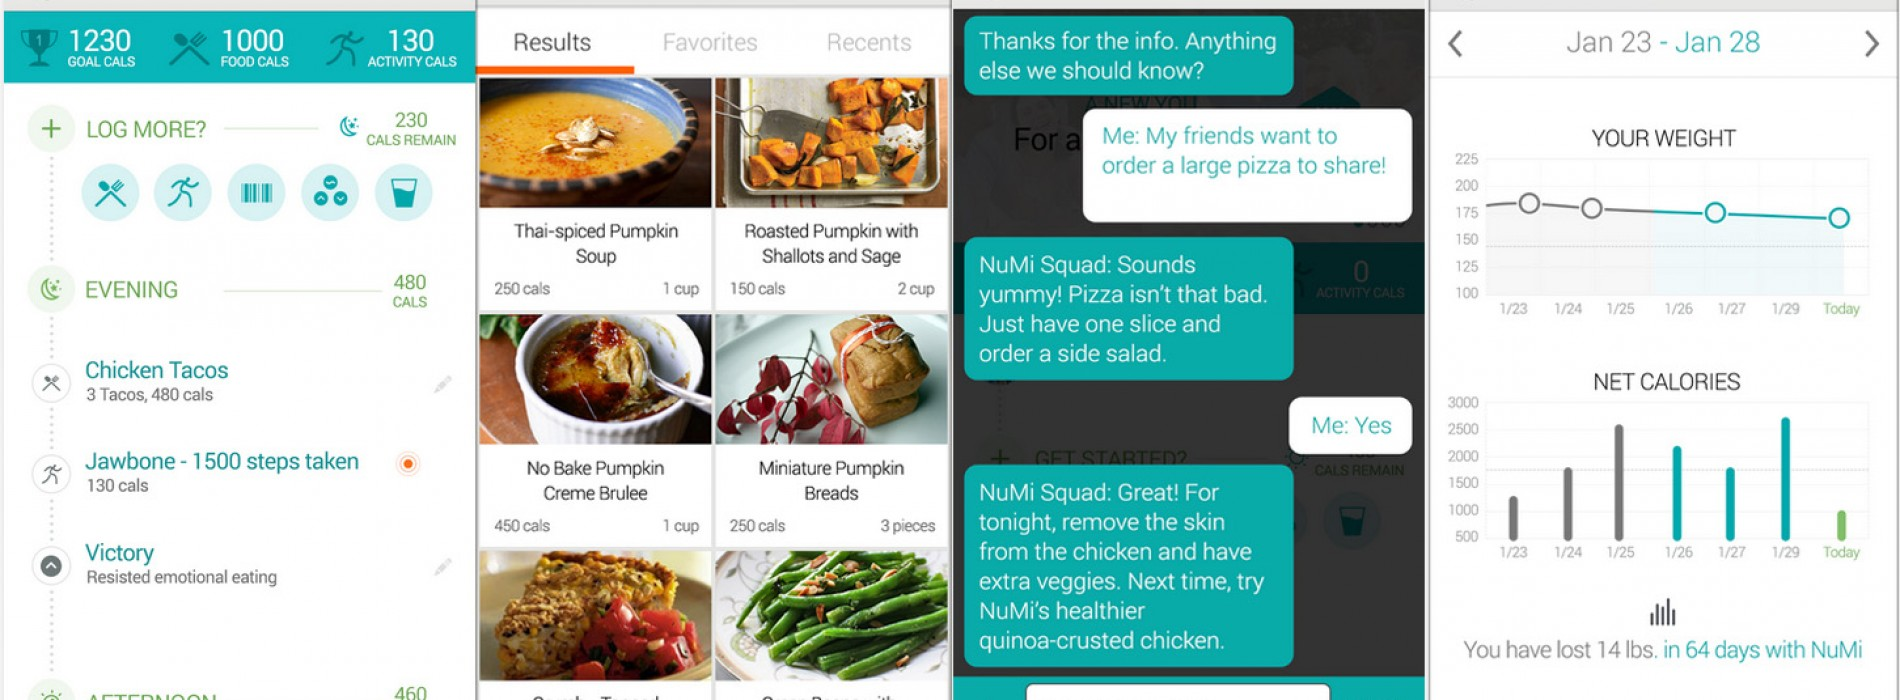 NutriSystem updates its NuMi app, a DIY digital weight loss system